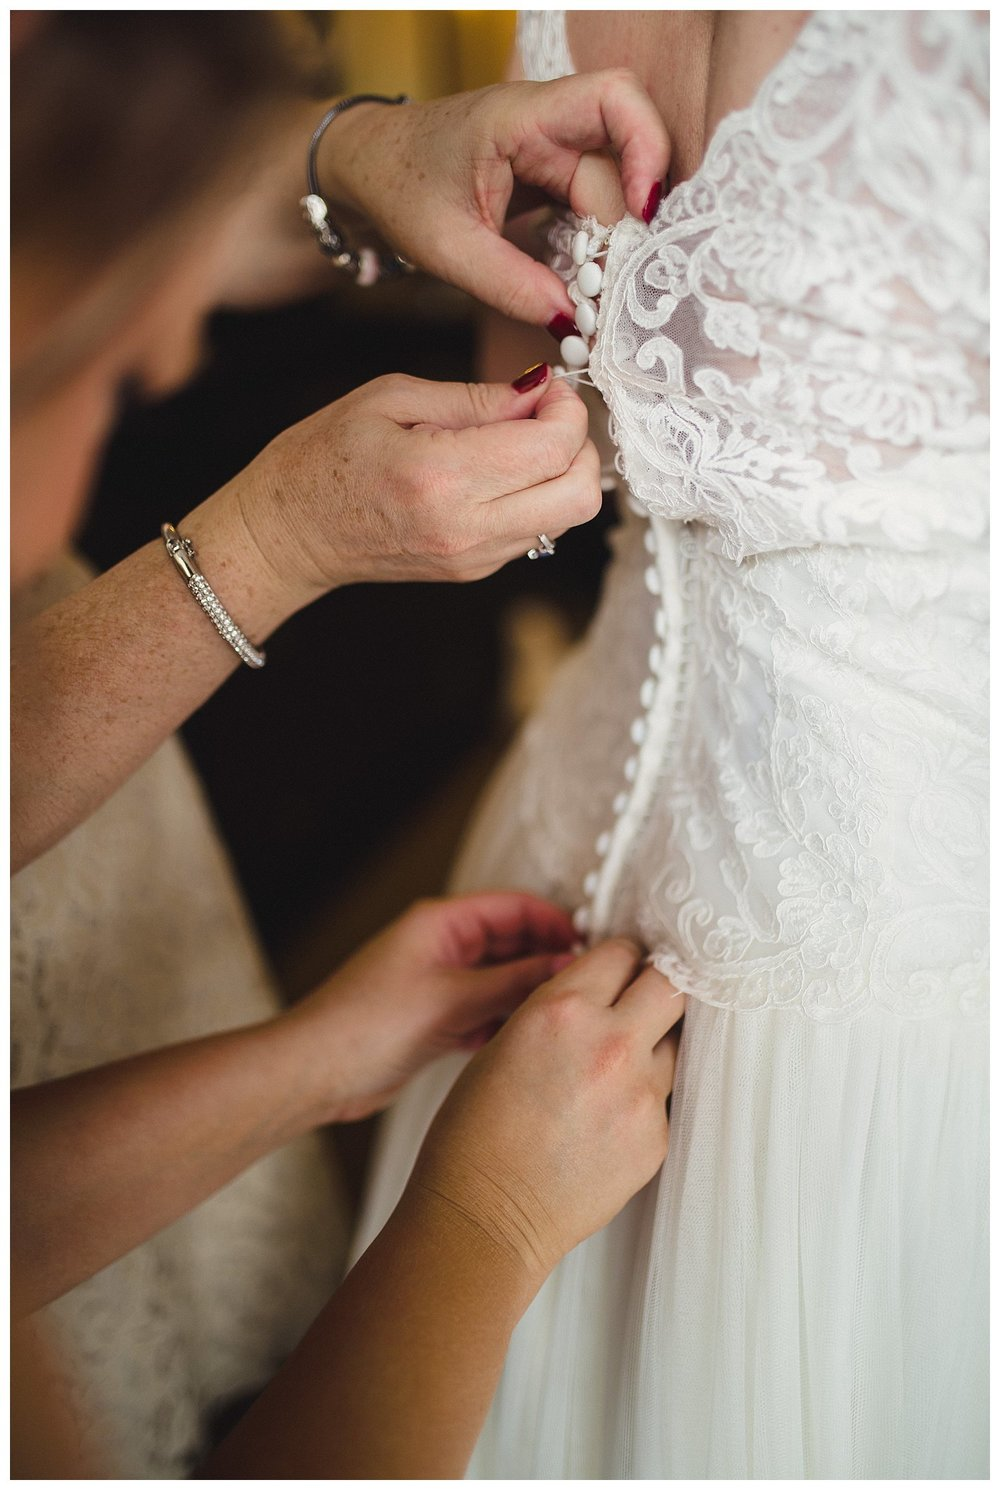 Kelsey_Diane_Photography_Loose_Mansion_Wedding_Photography_Kansas_City_Victor_Lyndsay_0310.jpg